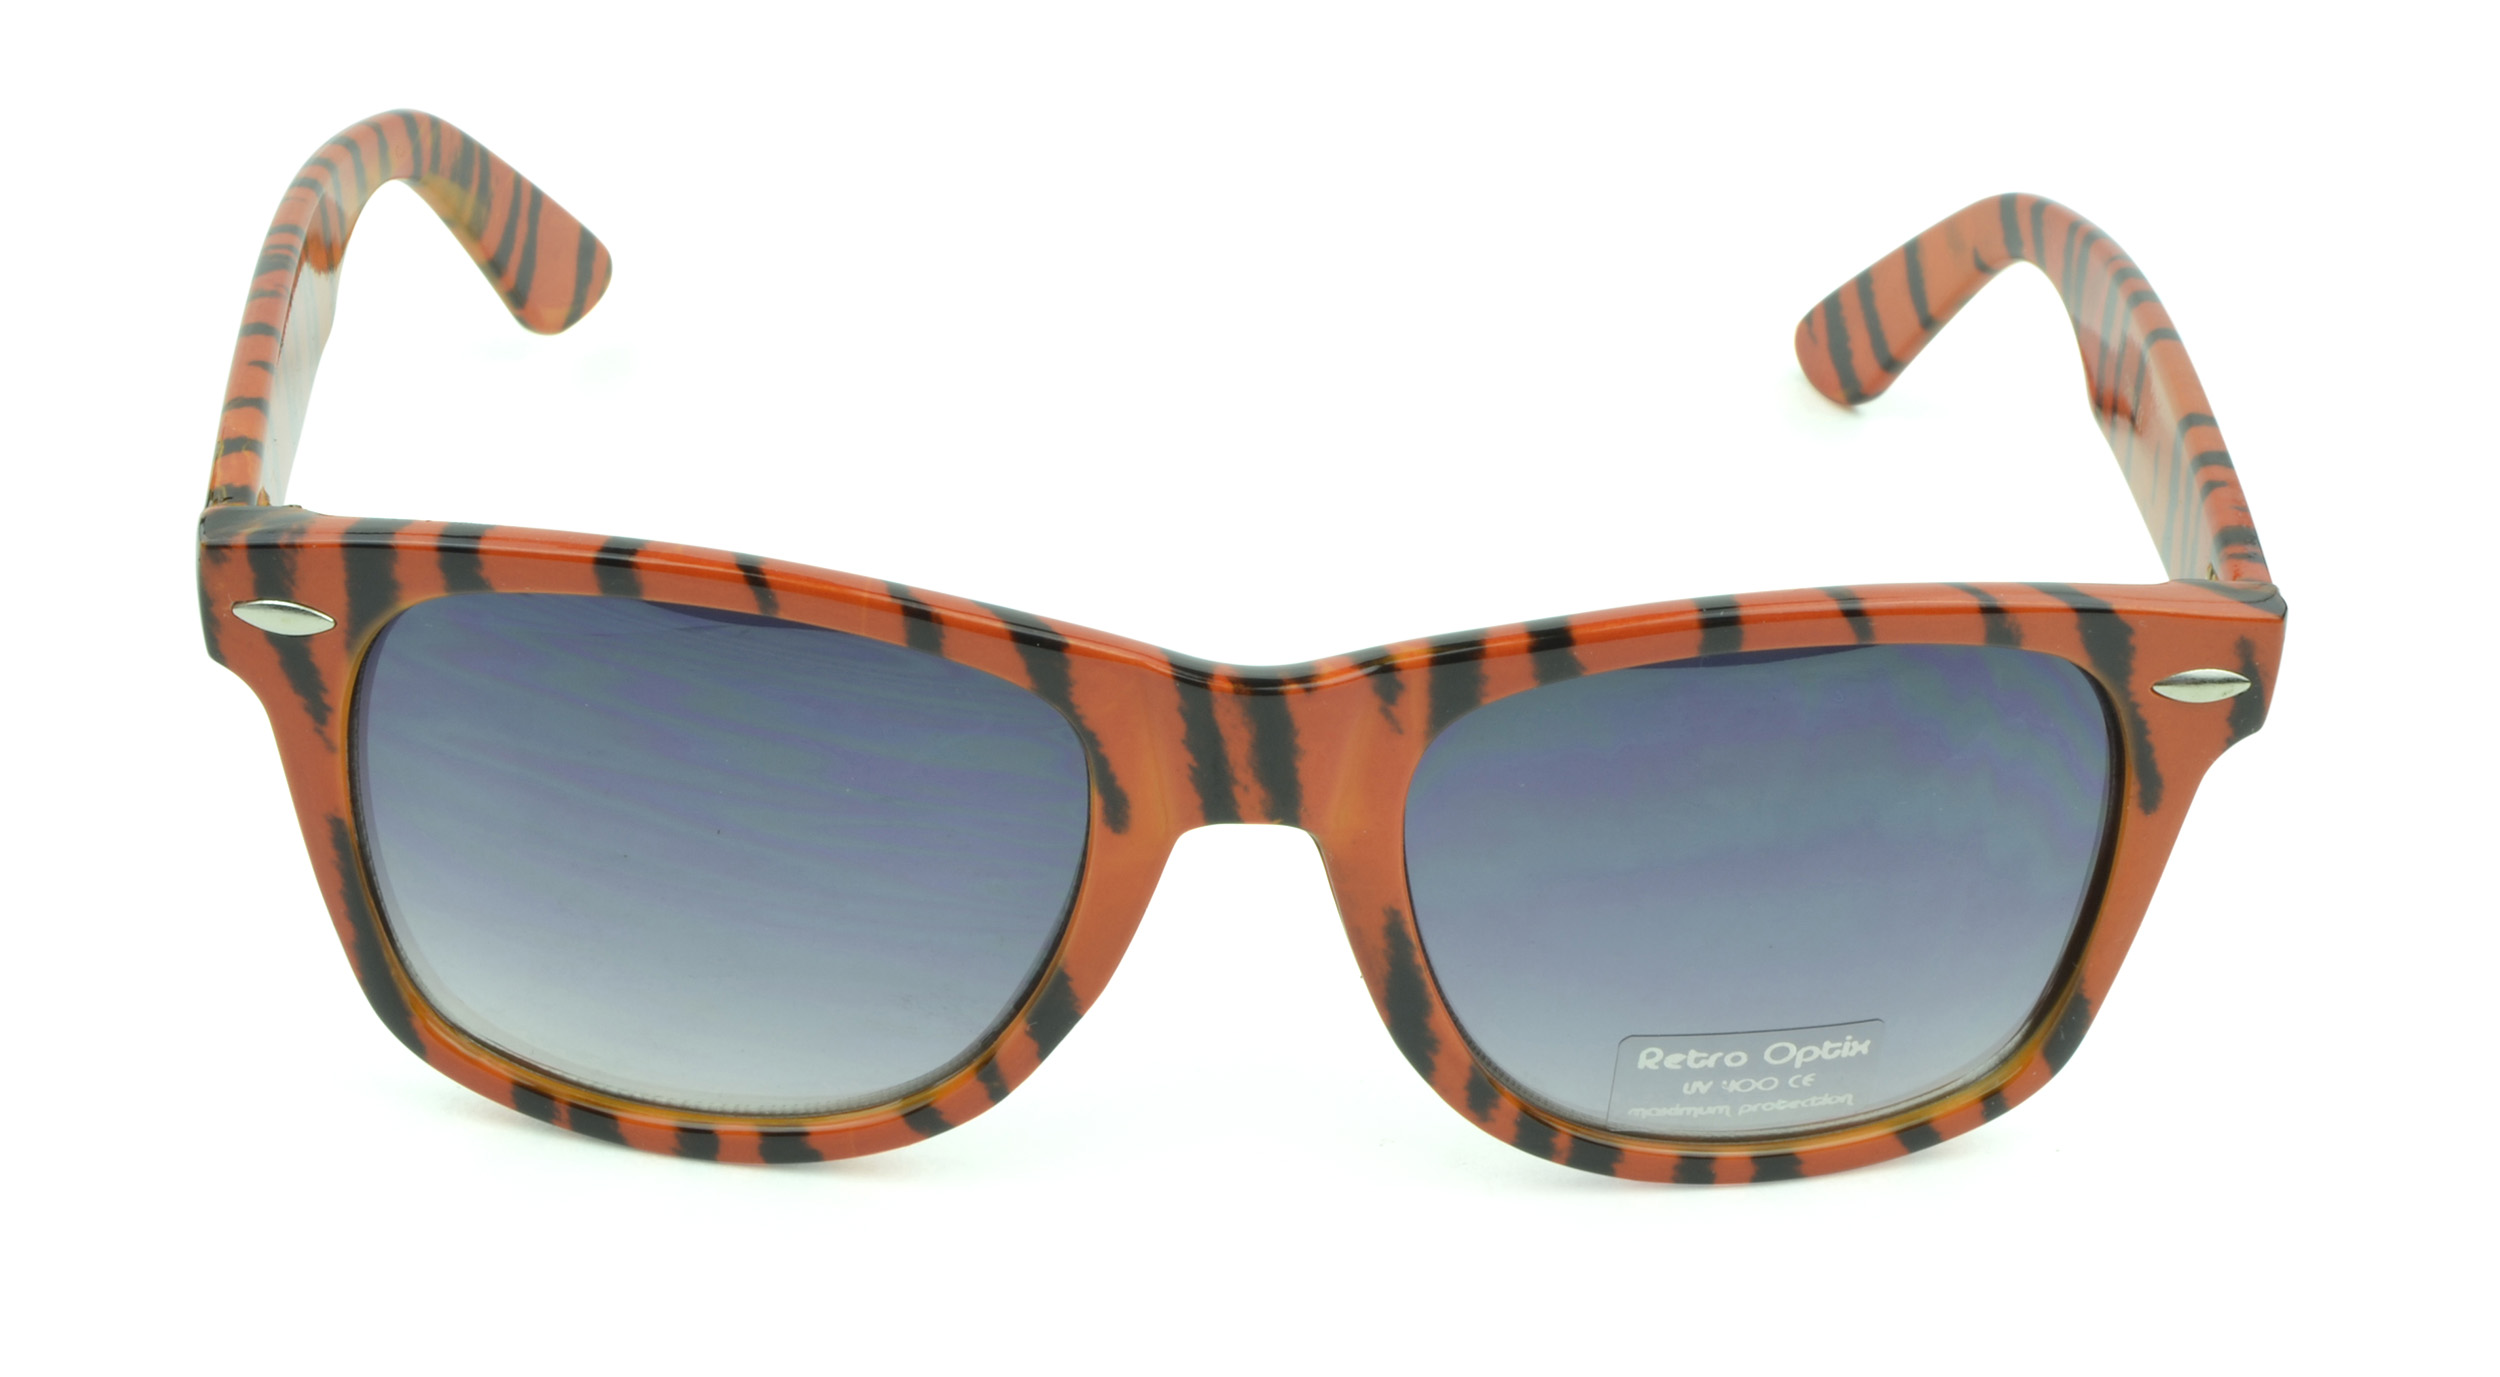 Belle Donne - Wayfarer Style Sunglasses Trendy Cheap Sunglasses High Quality Animal Print - Orange